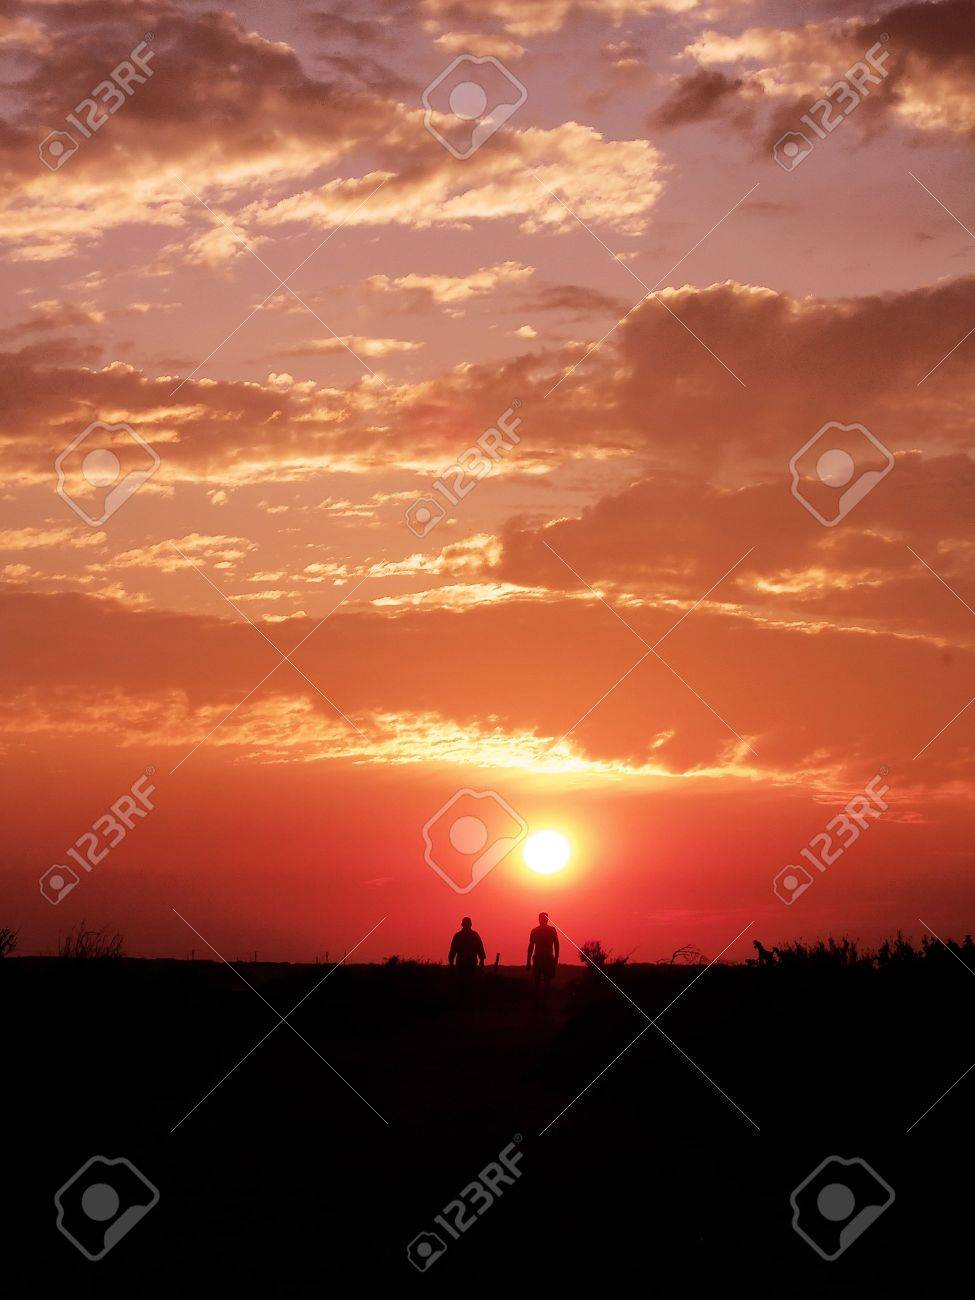 Two people running on the sunset with a sky full of clouds. Stock Photo - 2892382